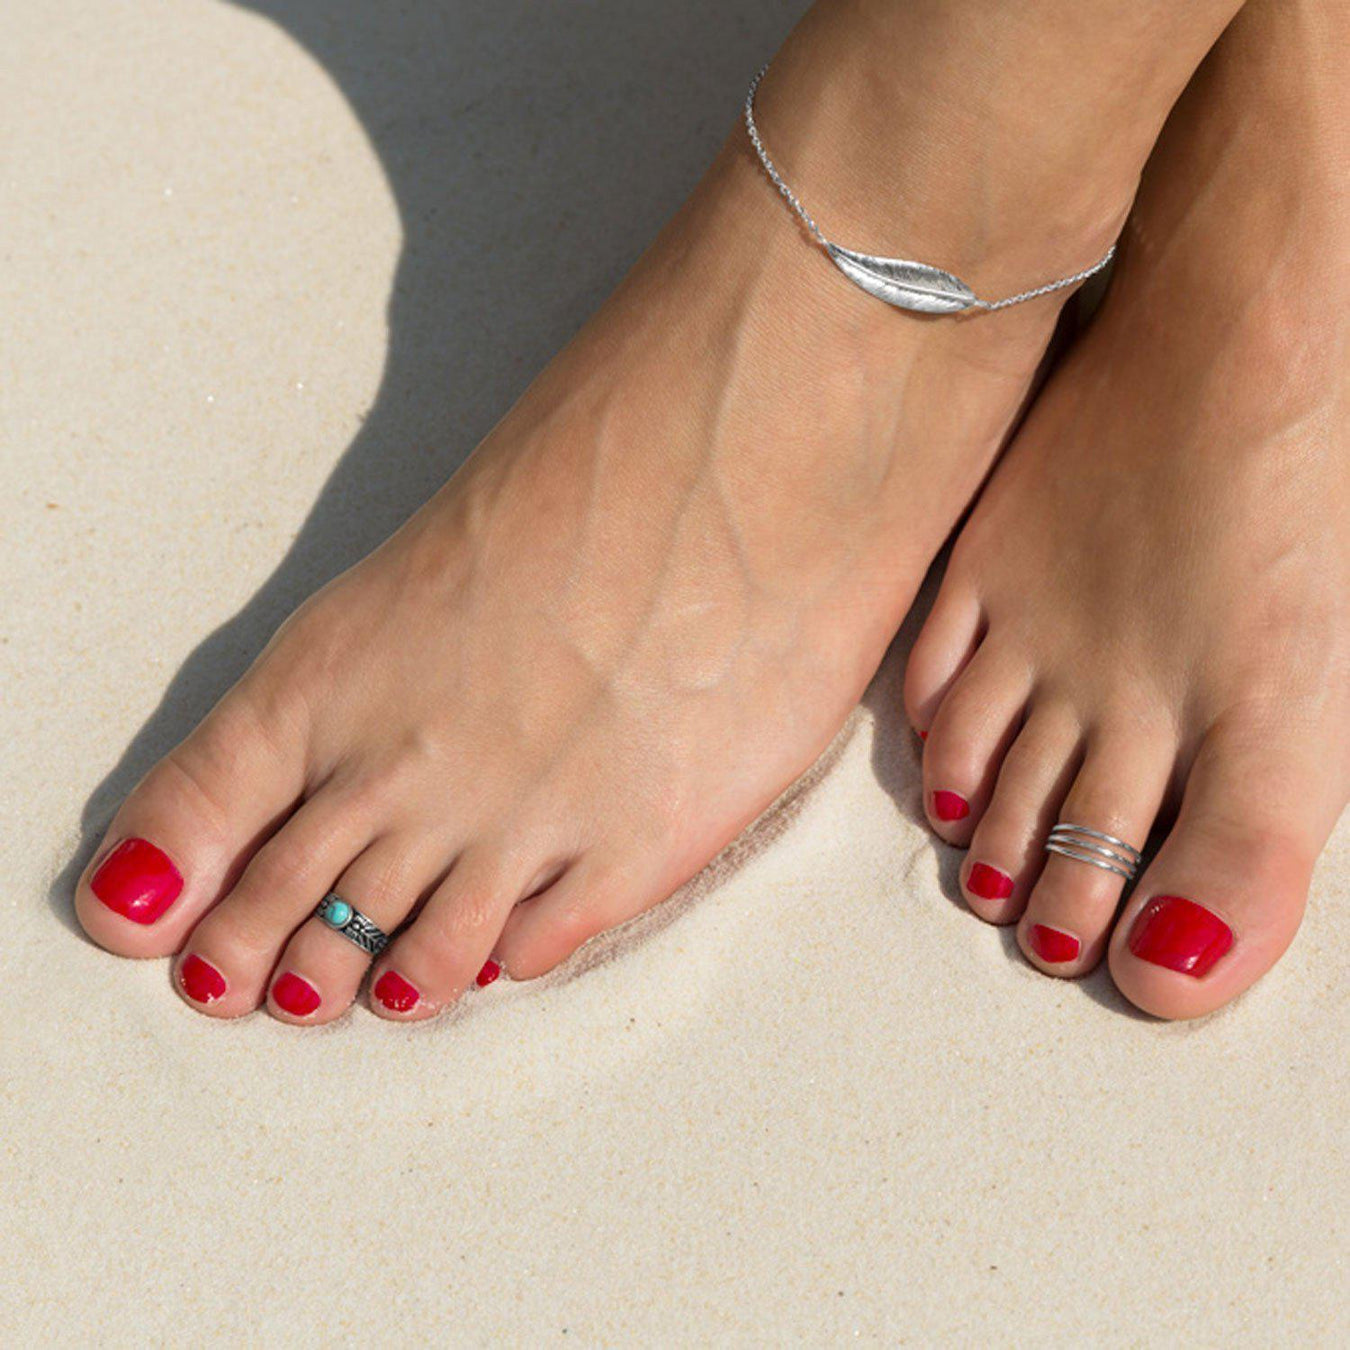 Toe Rings and Anklets from Needjewelry.com